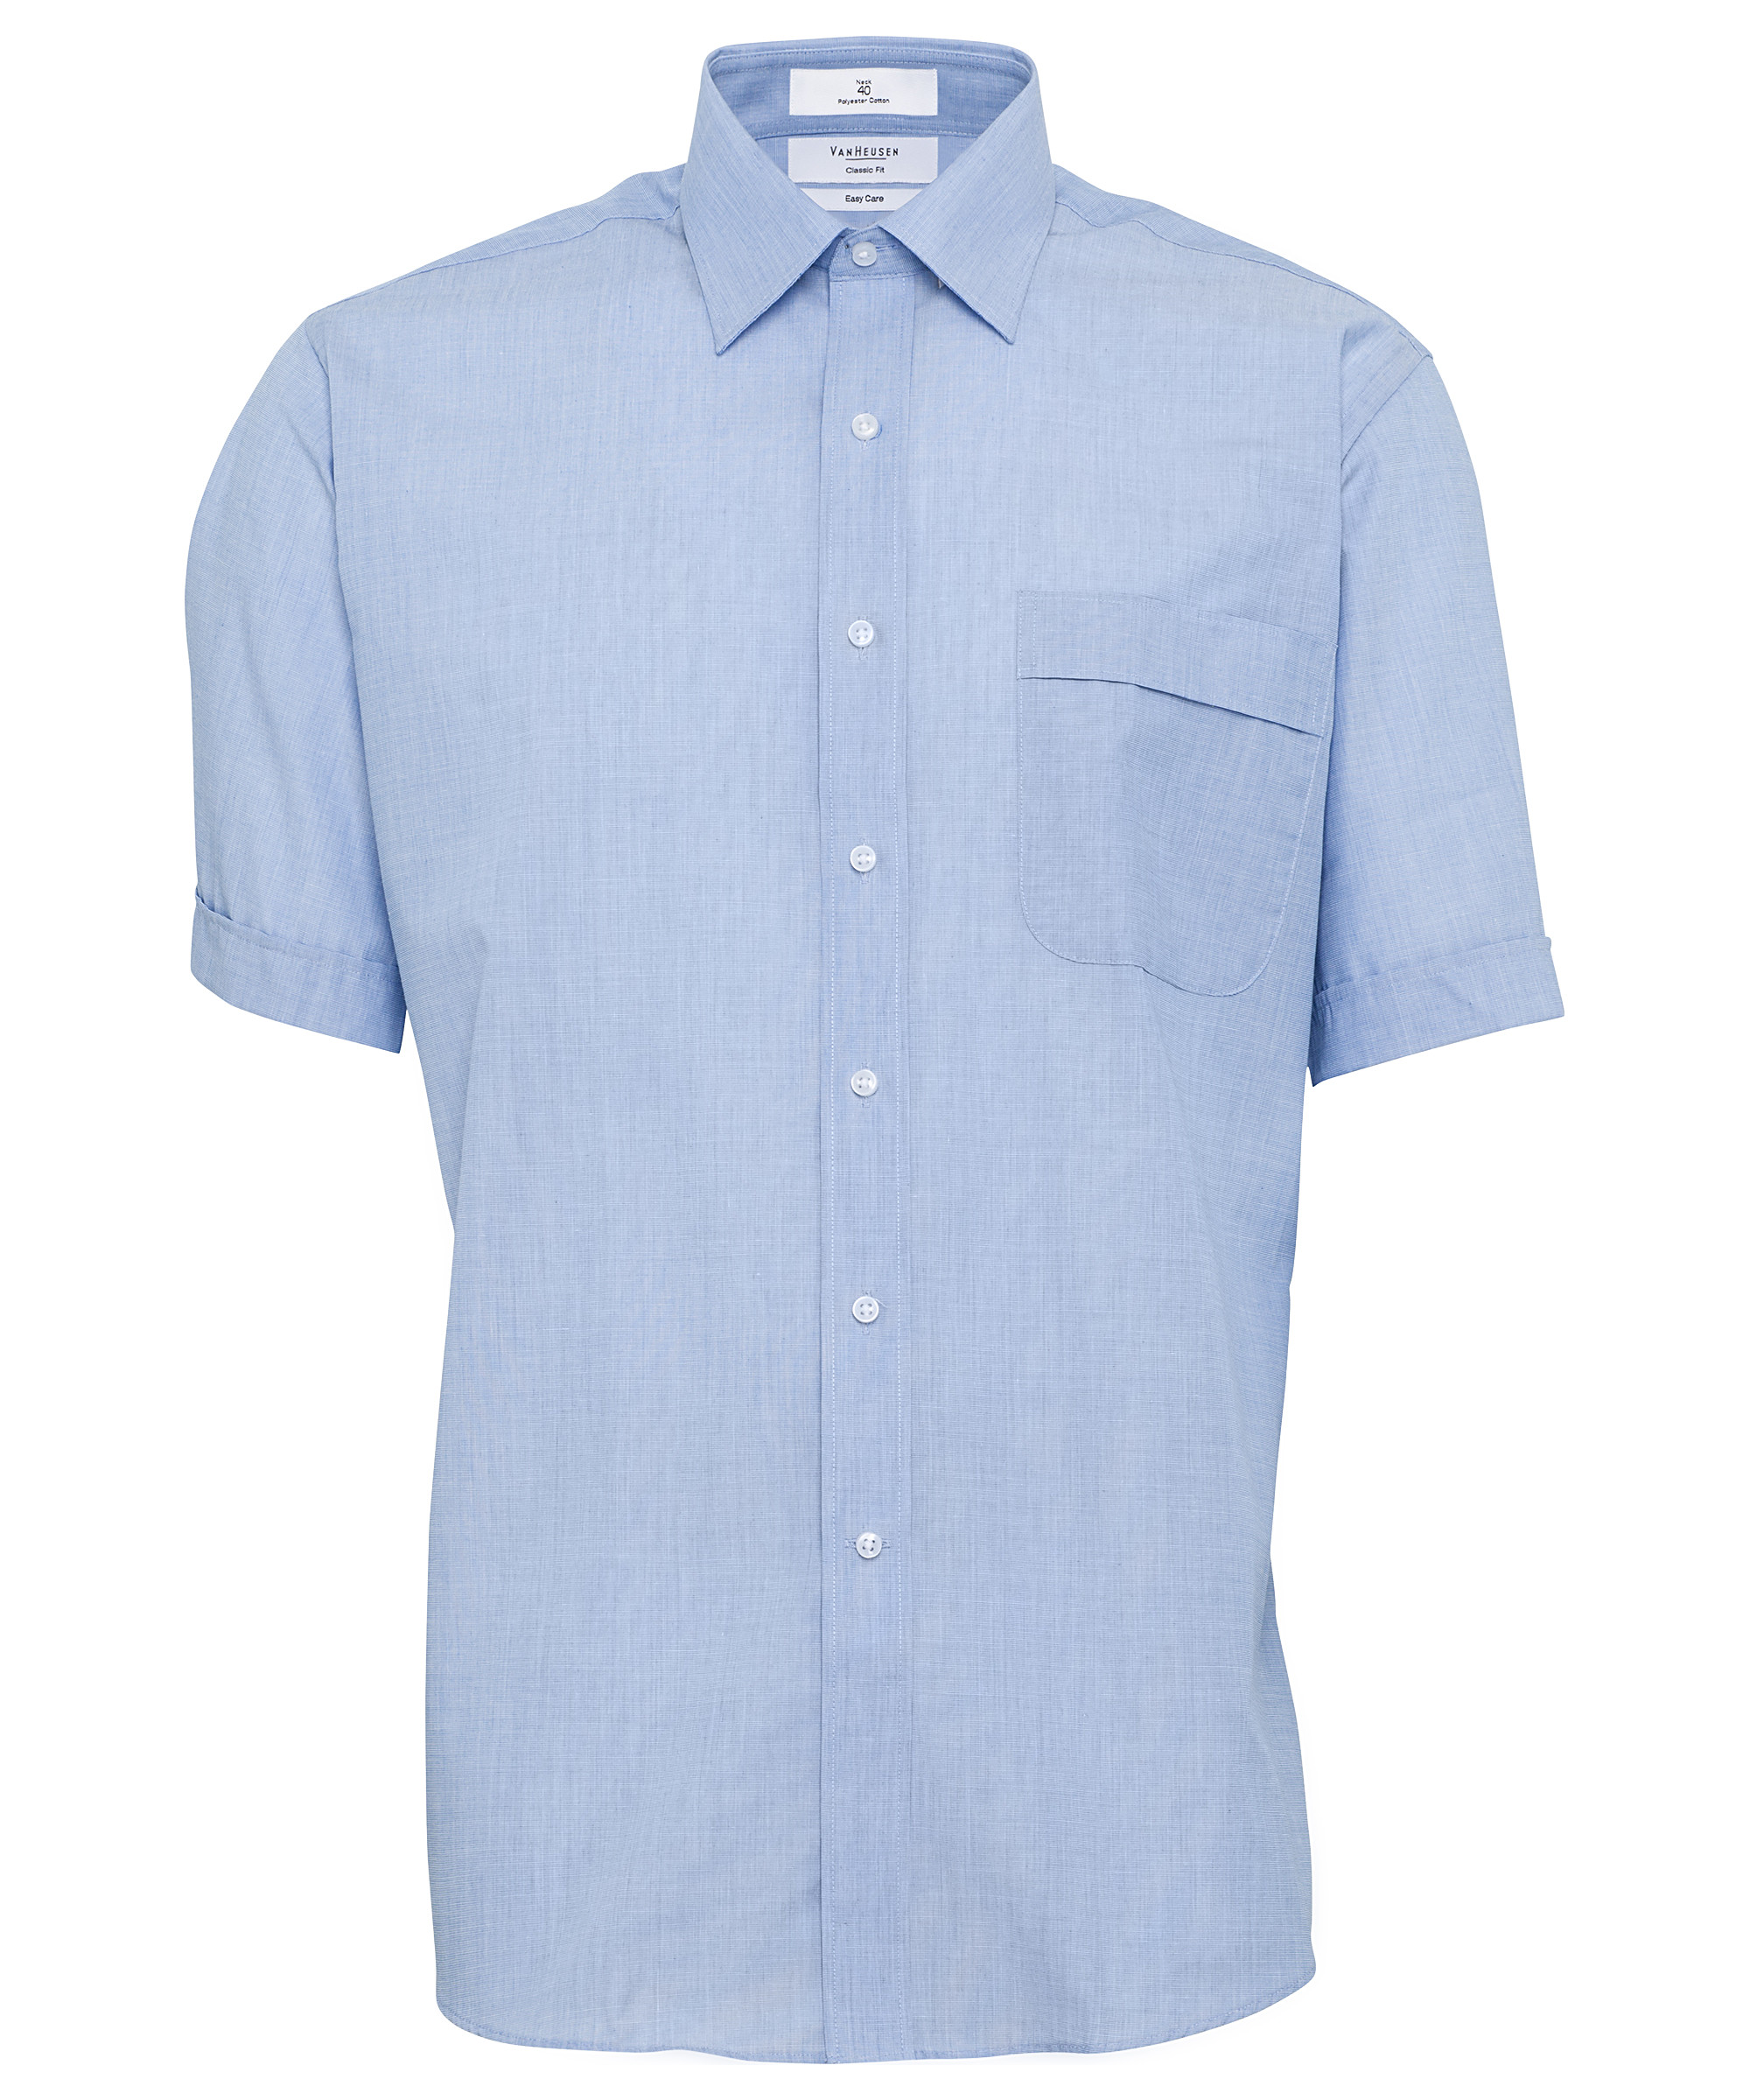 0b268306158 Van Heusen. Men s Classic Relaxed Fit Shirt Polyester Cotton Yarn Dyed End  on End Easy Care Short Sleeve